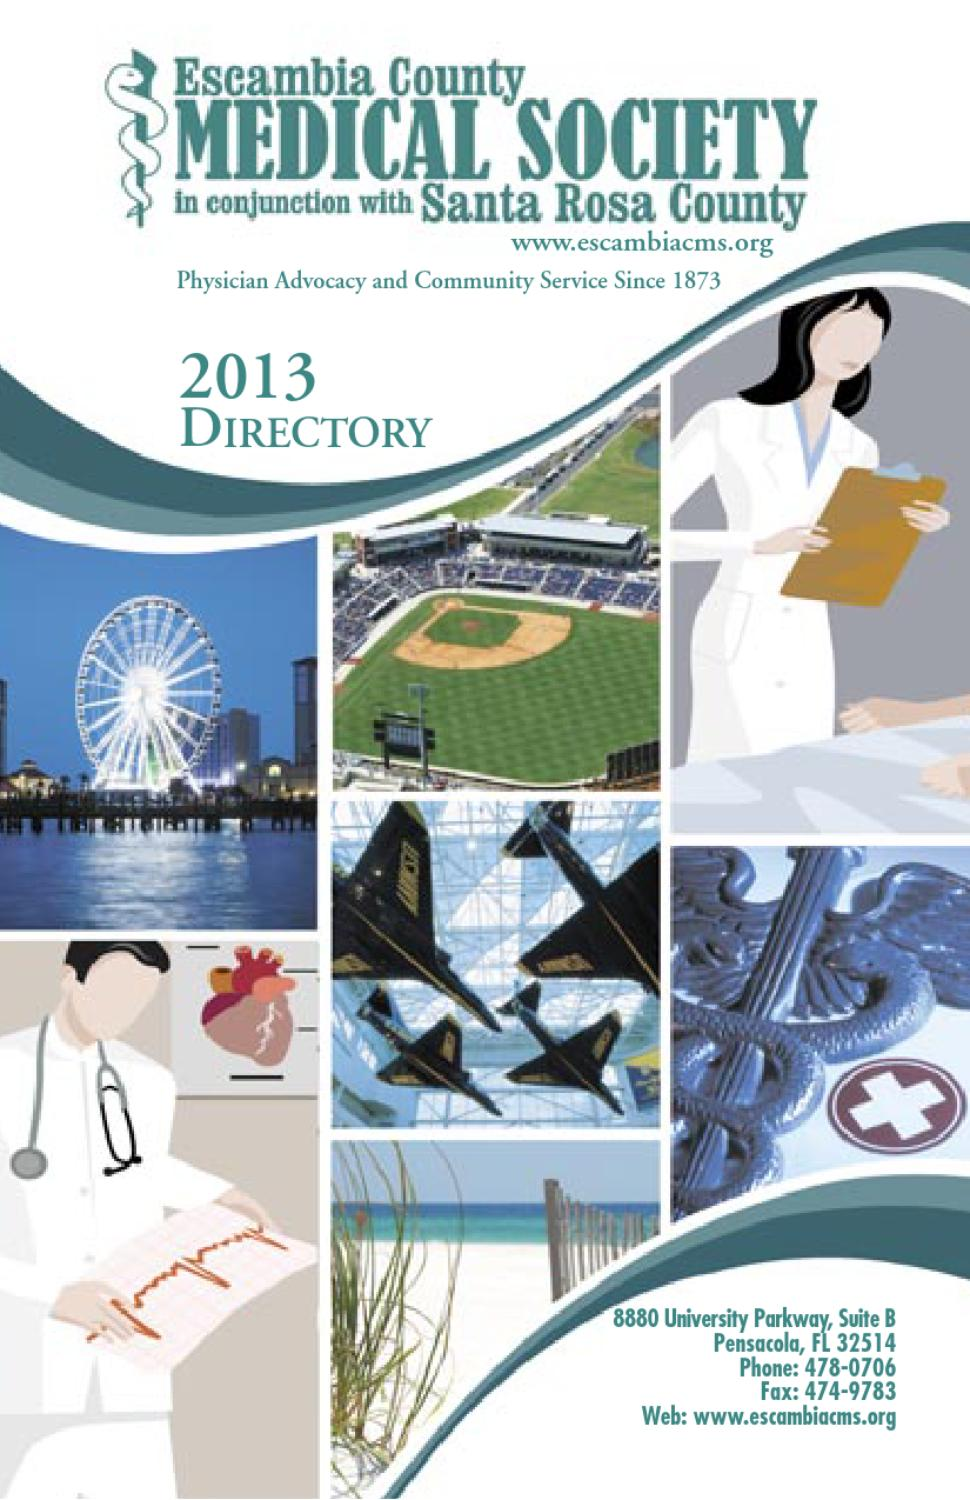 Escambia County Medical Society Directory 2013 by Ballinger